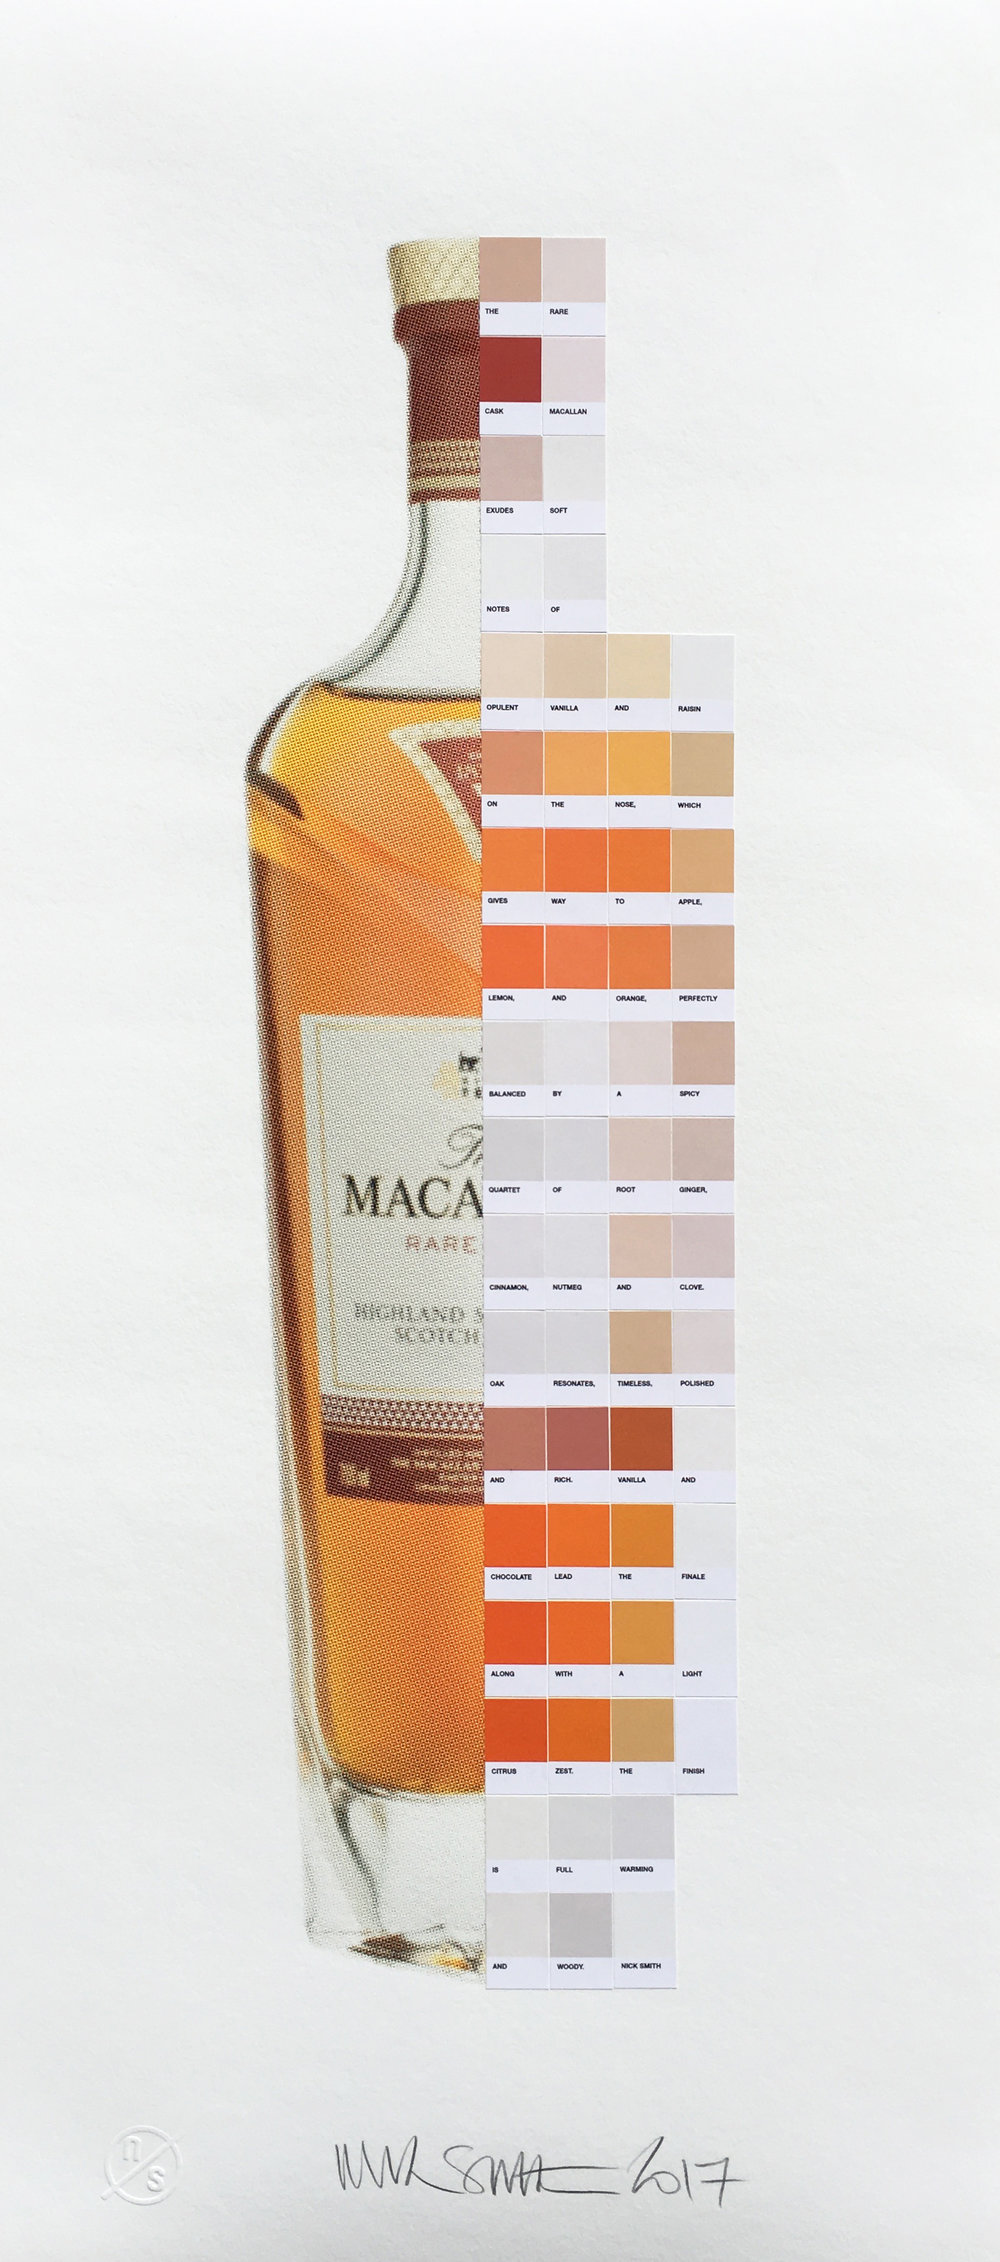 Nick Smith Macallan Rare Cask.jpg